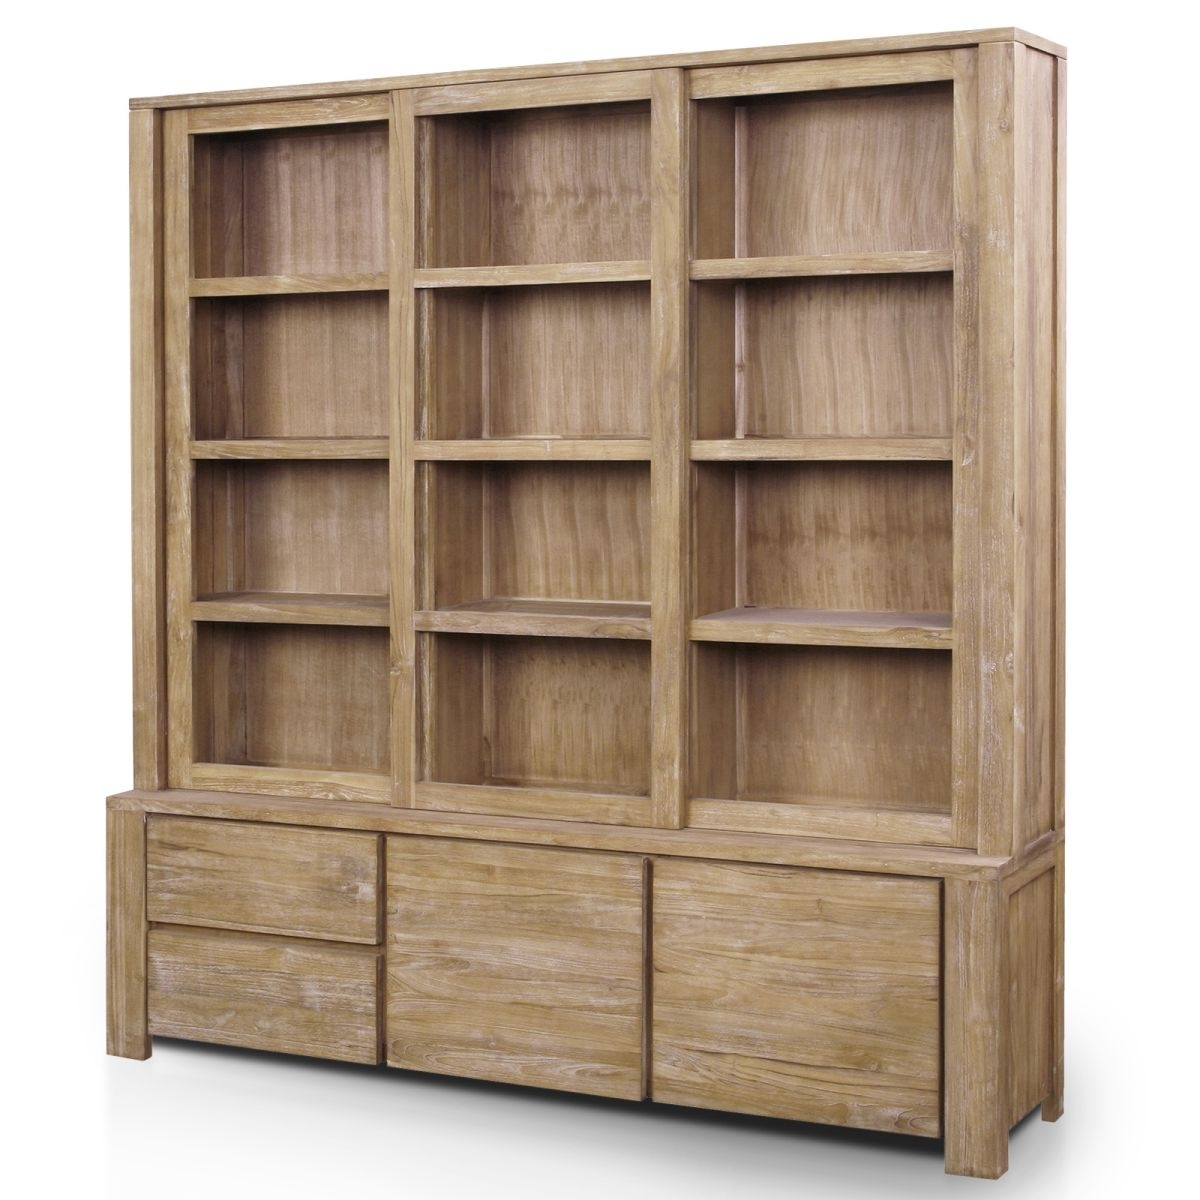 Widely Used Best Bookcase With Doors Large Wood Bookcase With Doors 6 Glass Pertaining To Large Solid Wood Bookcases (View 15 of 15)